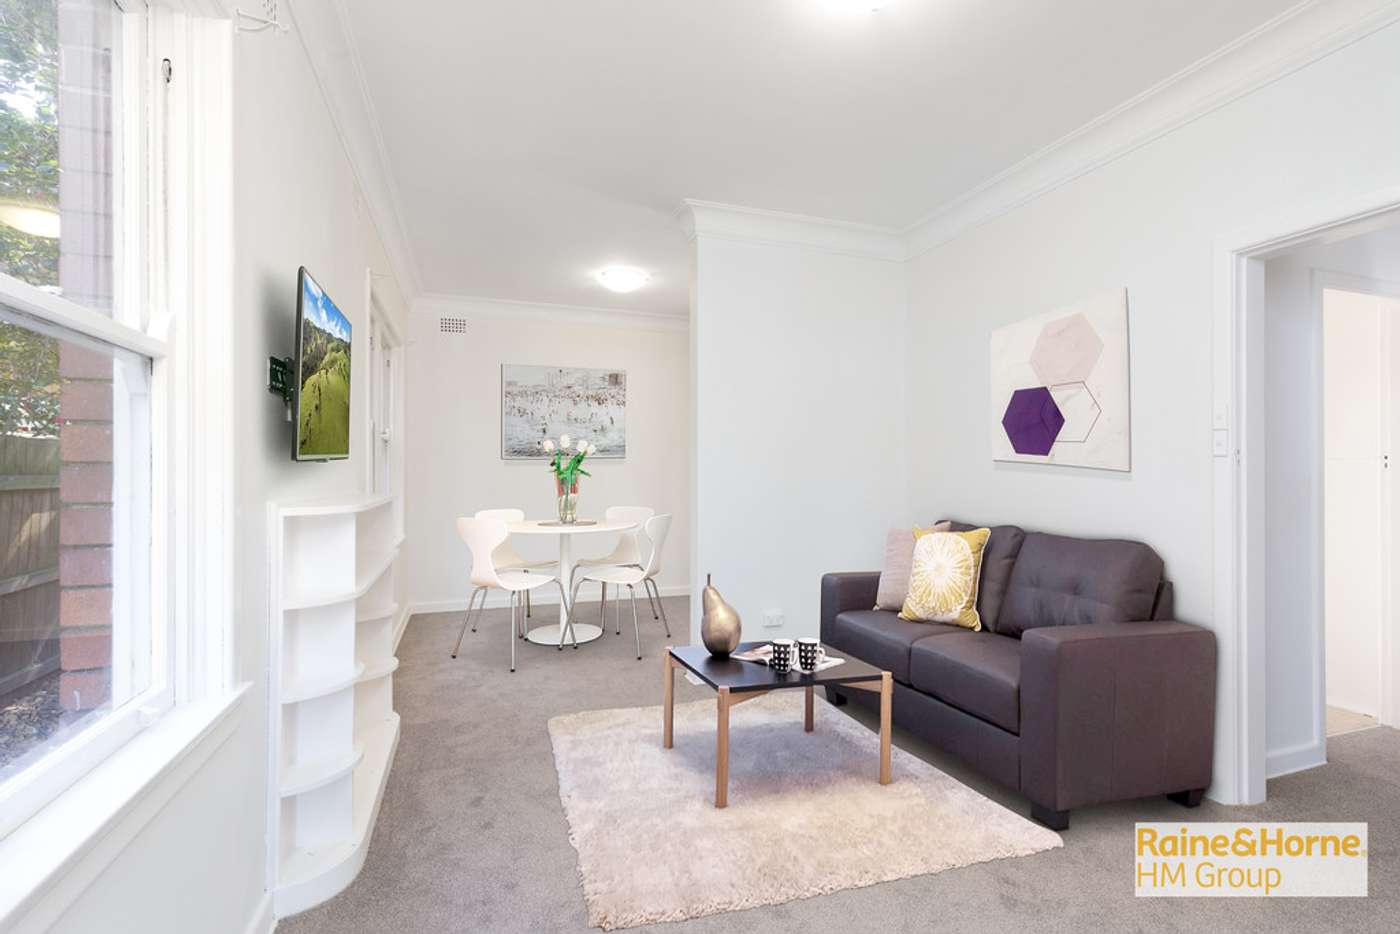 Main view of Homely apartment listing, 1/144 Ernest Street, Crows Nest NSW 2065